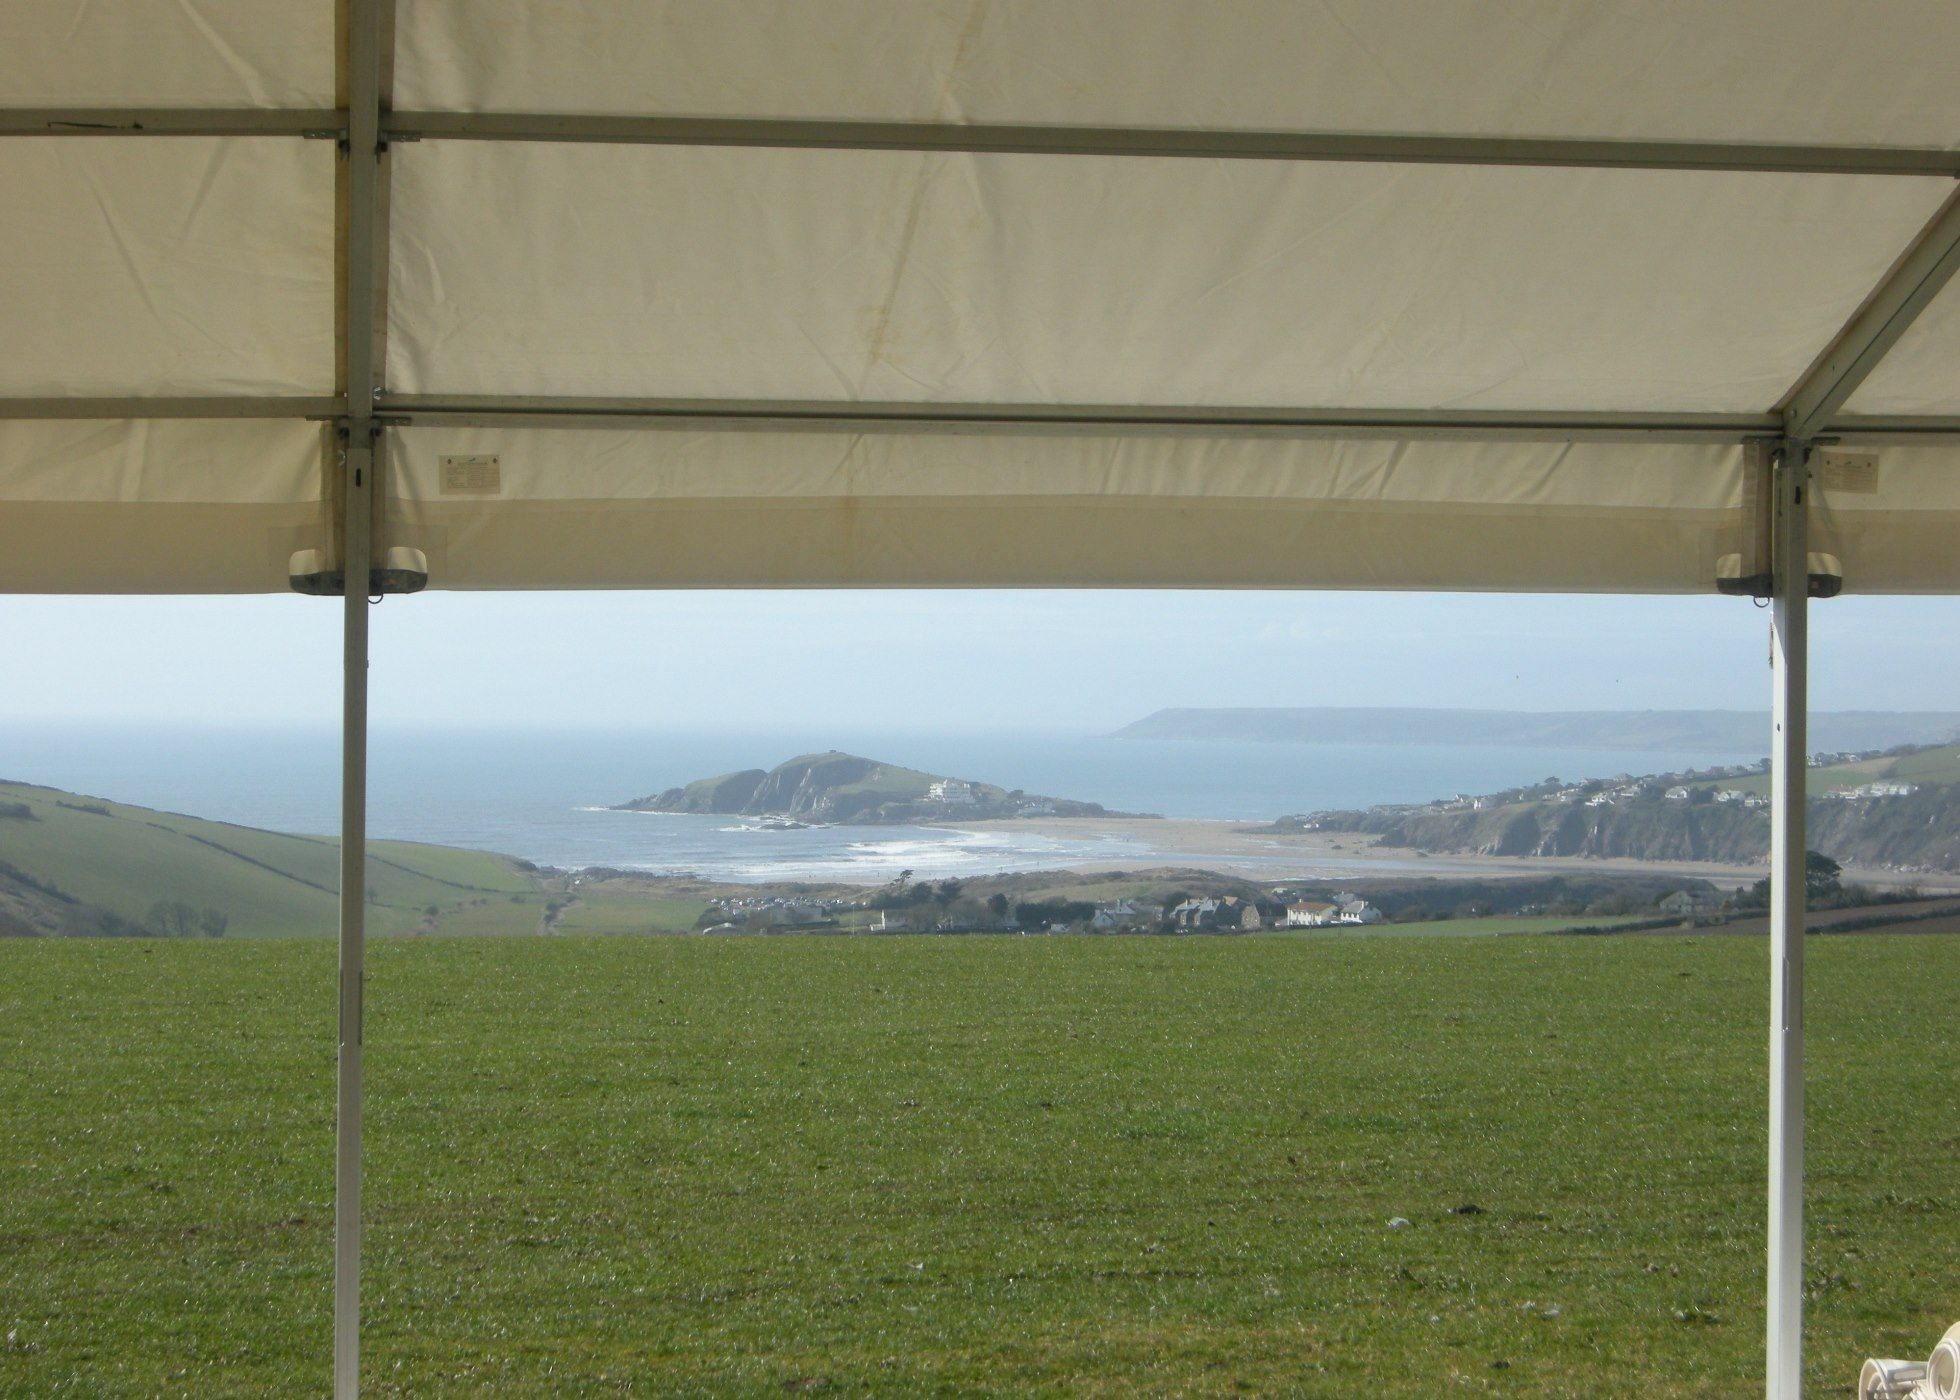 View of Burgh Island from marquee at Bantham Bash wedding site, Thurlestone, Devon